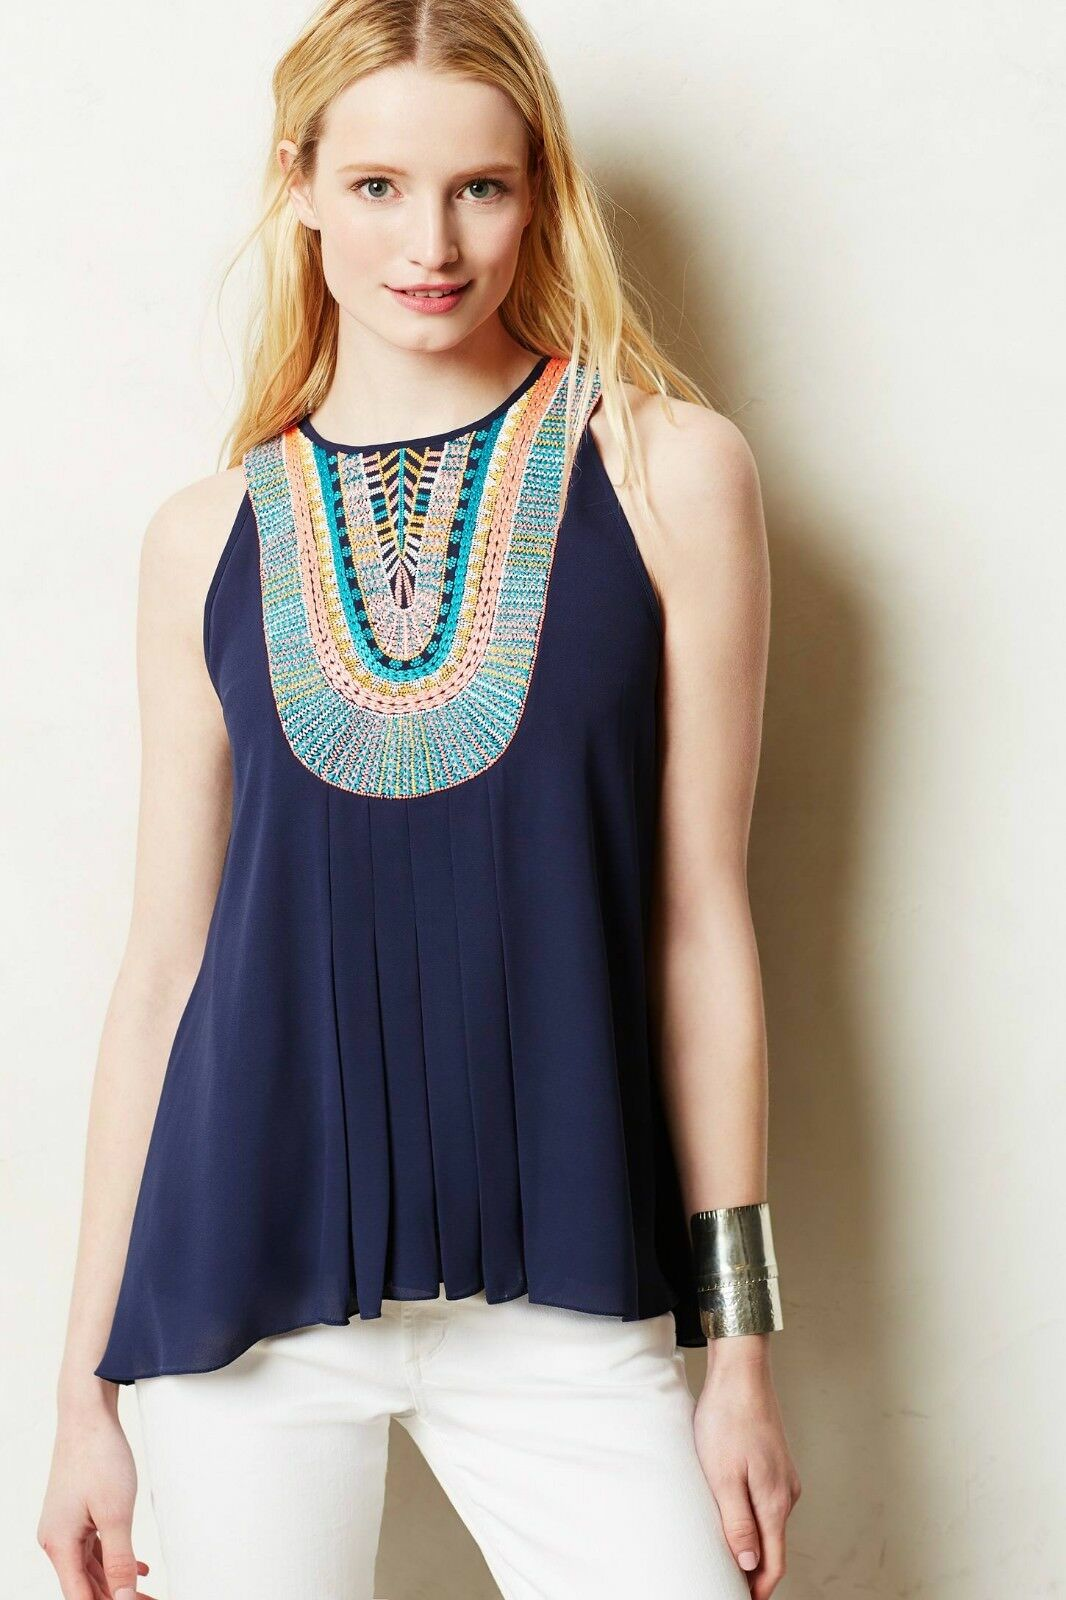 NIP Anthropologie by Ranna Gill, Embroidered Atoll Tank Top, L, Navy,  148